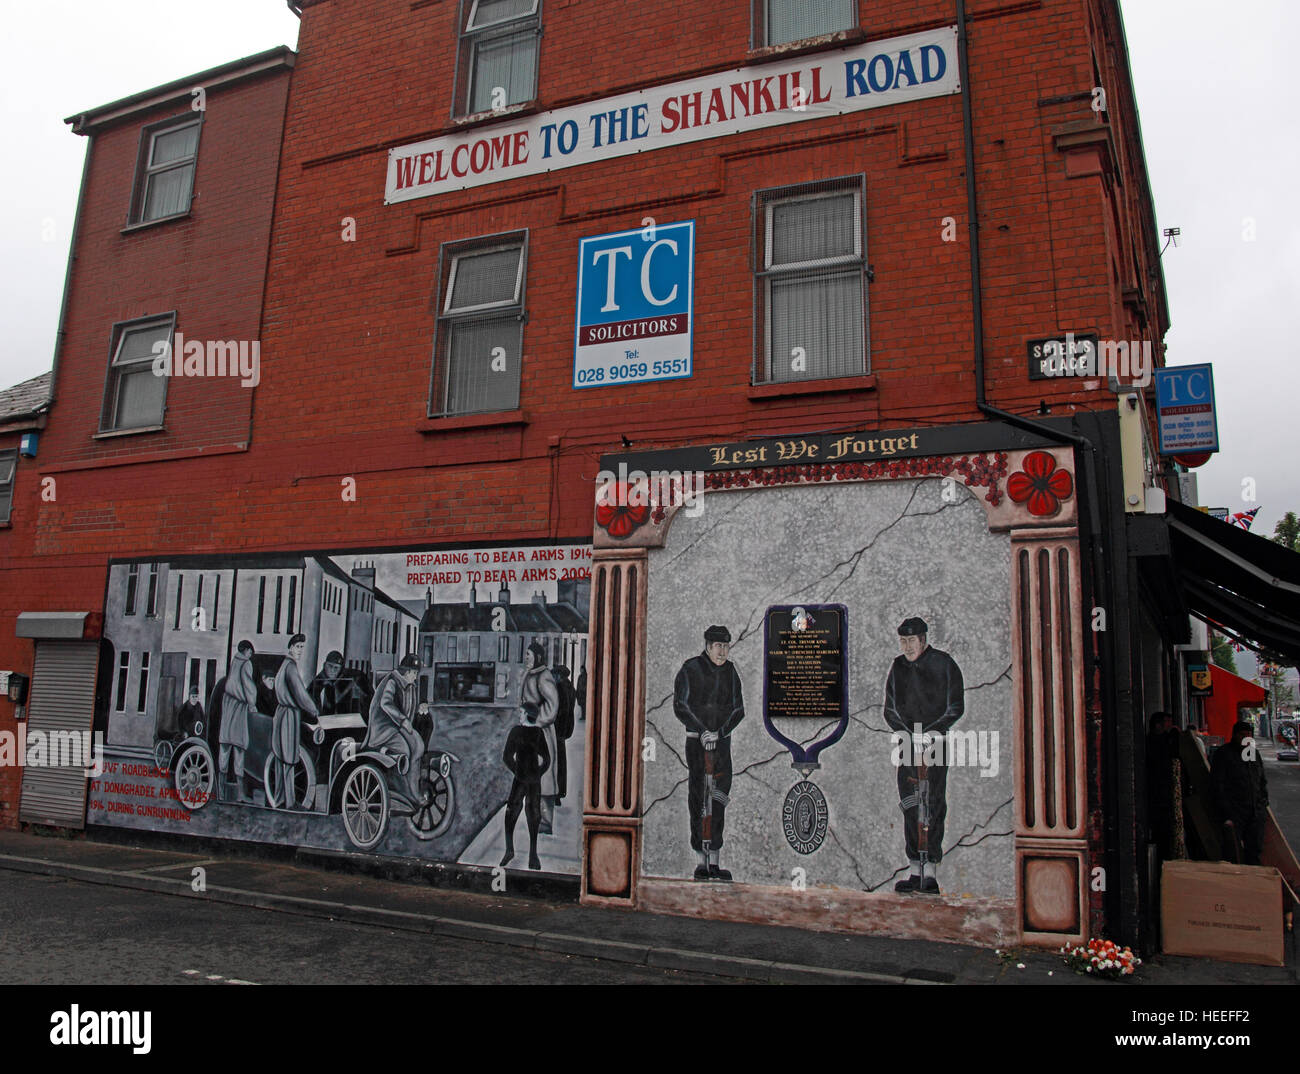 Belfast Unionist, Loyalist Mural & Welcome to the Shankill Road - Stock Image